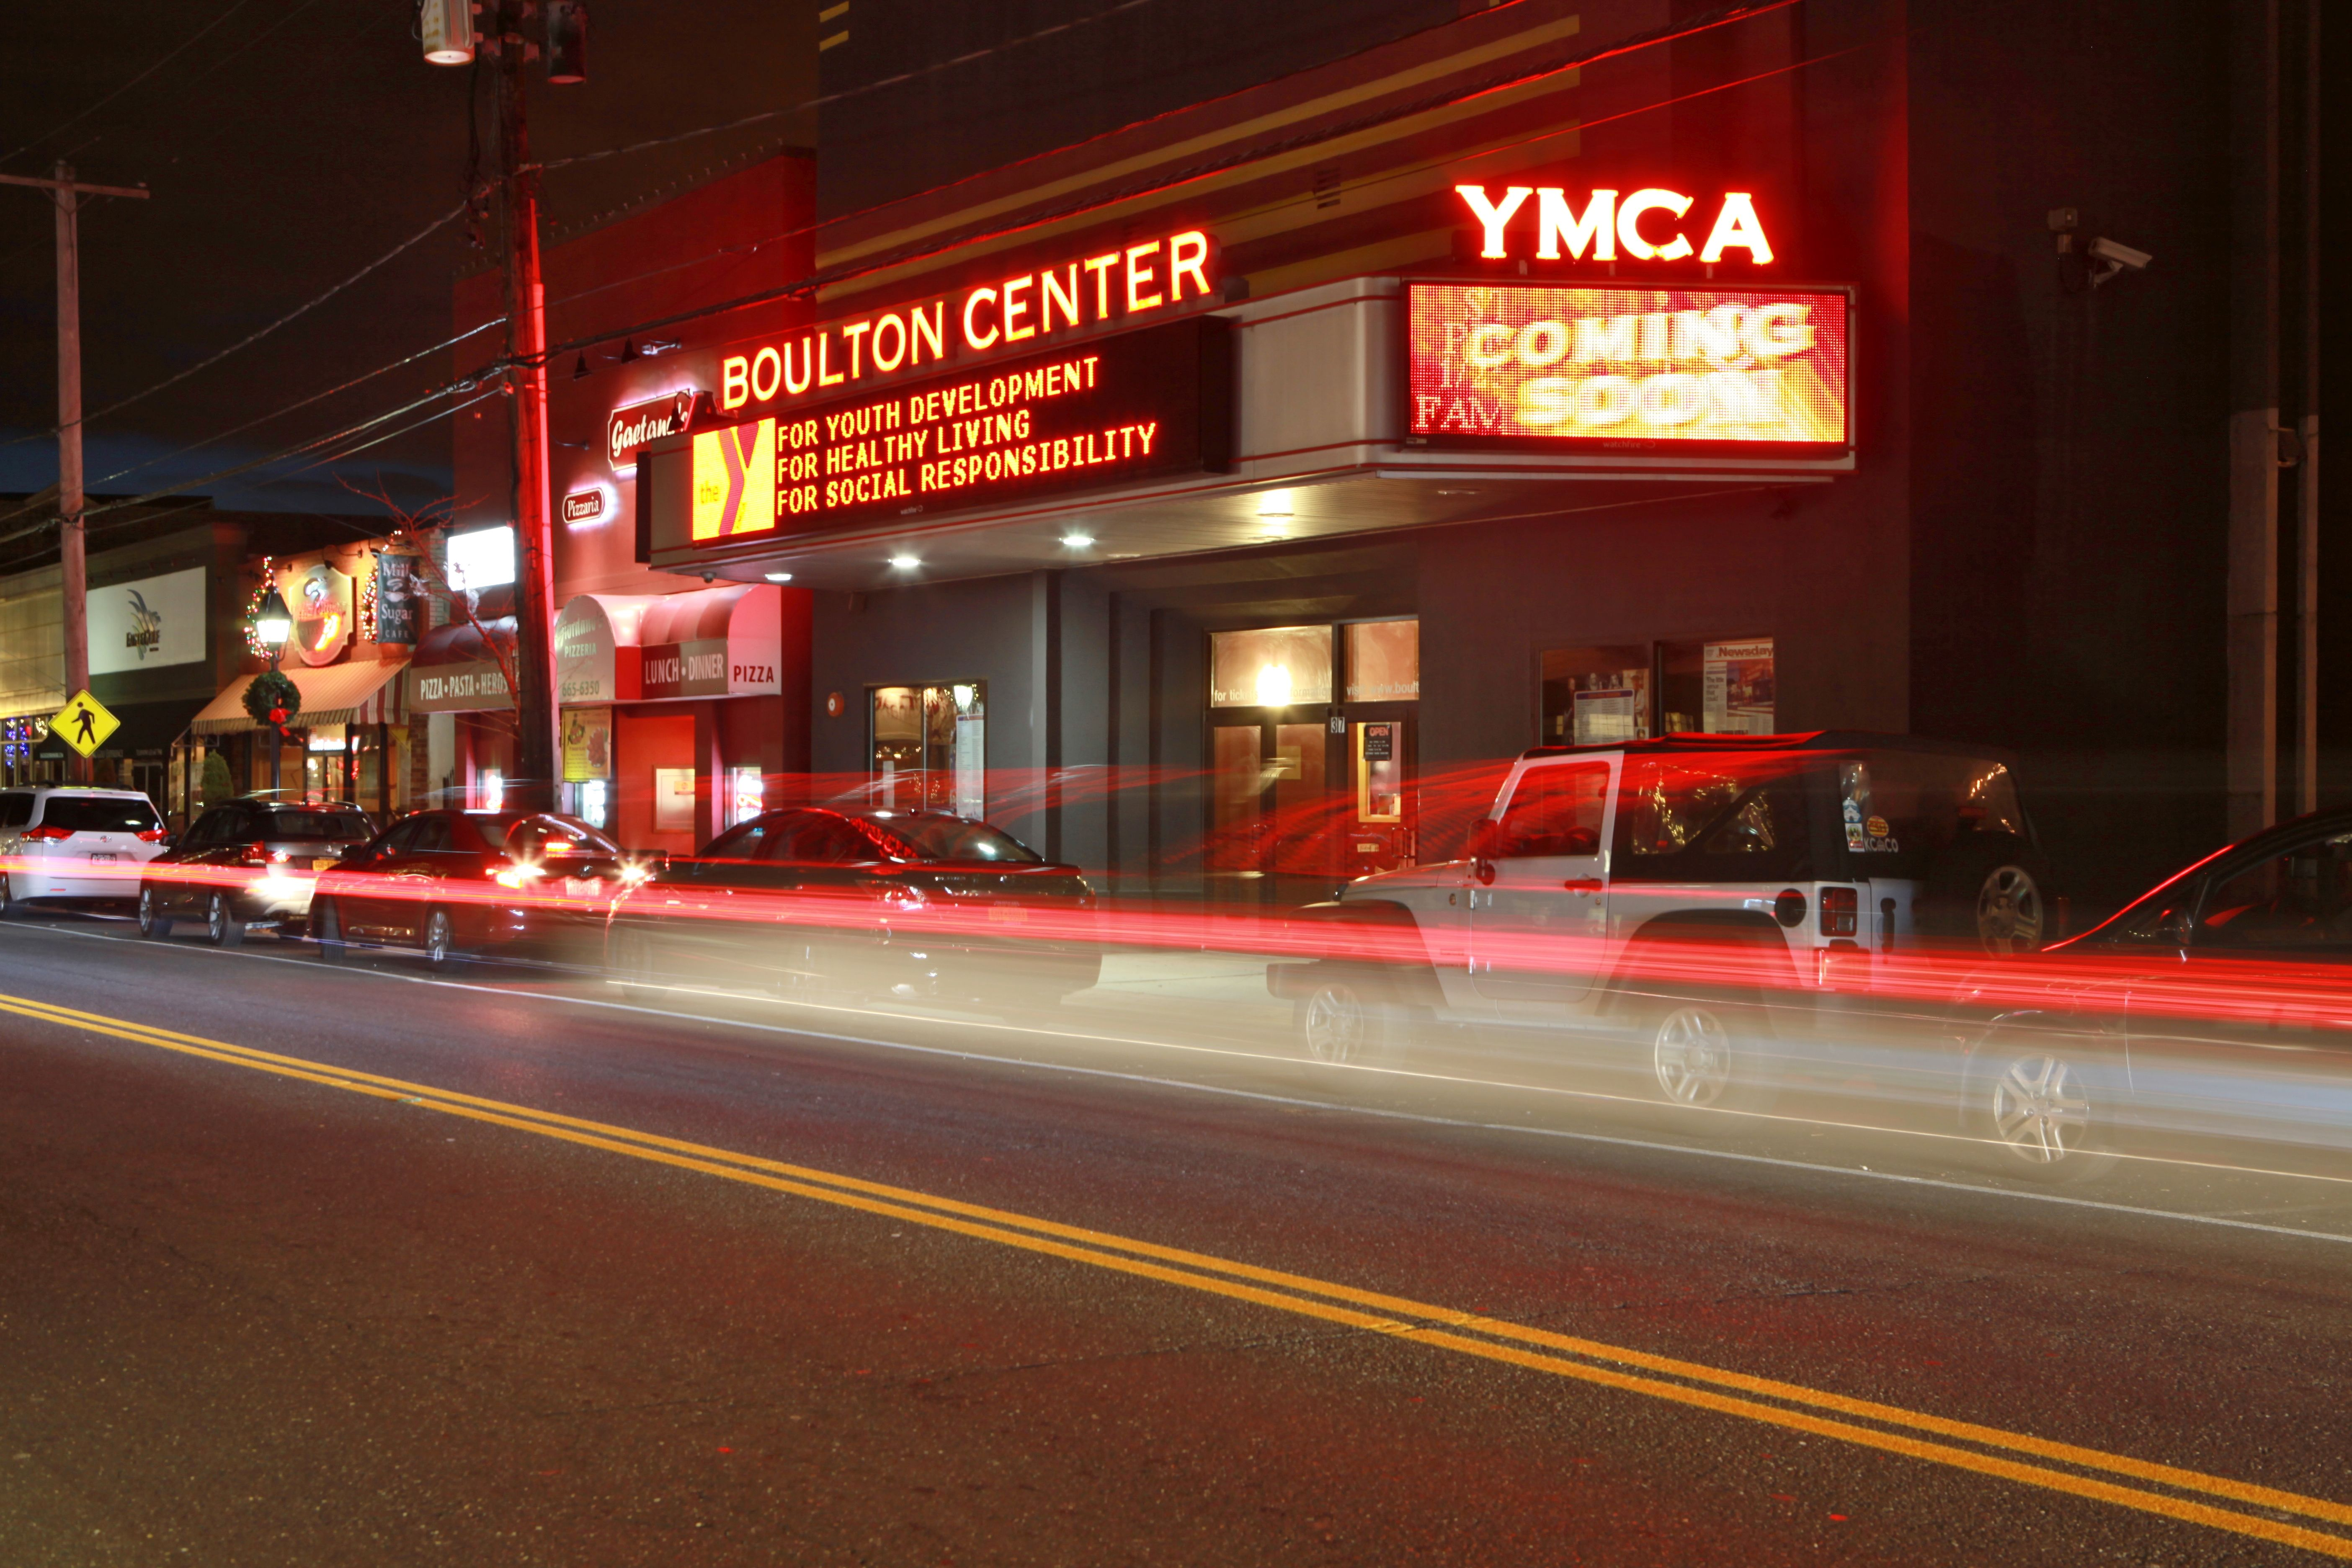 YMCA Boulton Center for the Performing Arts